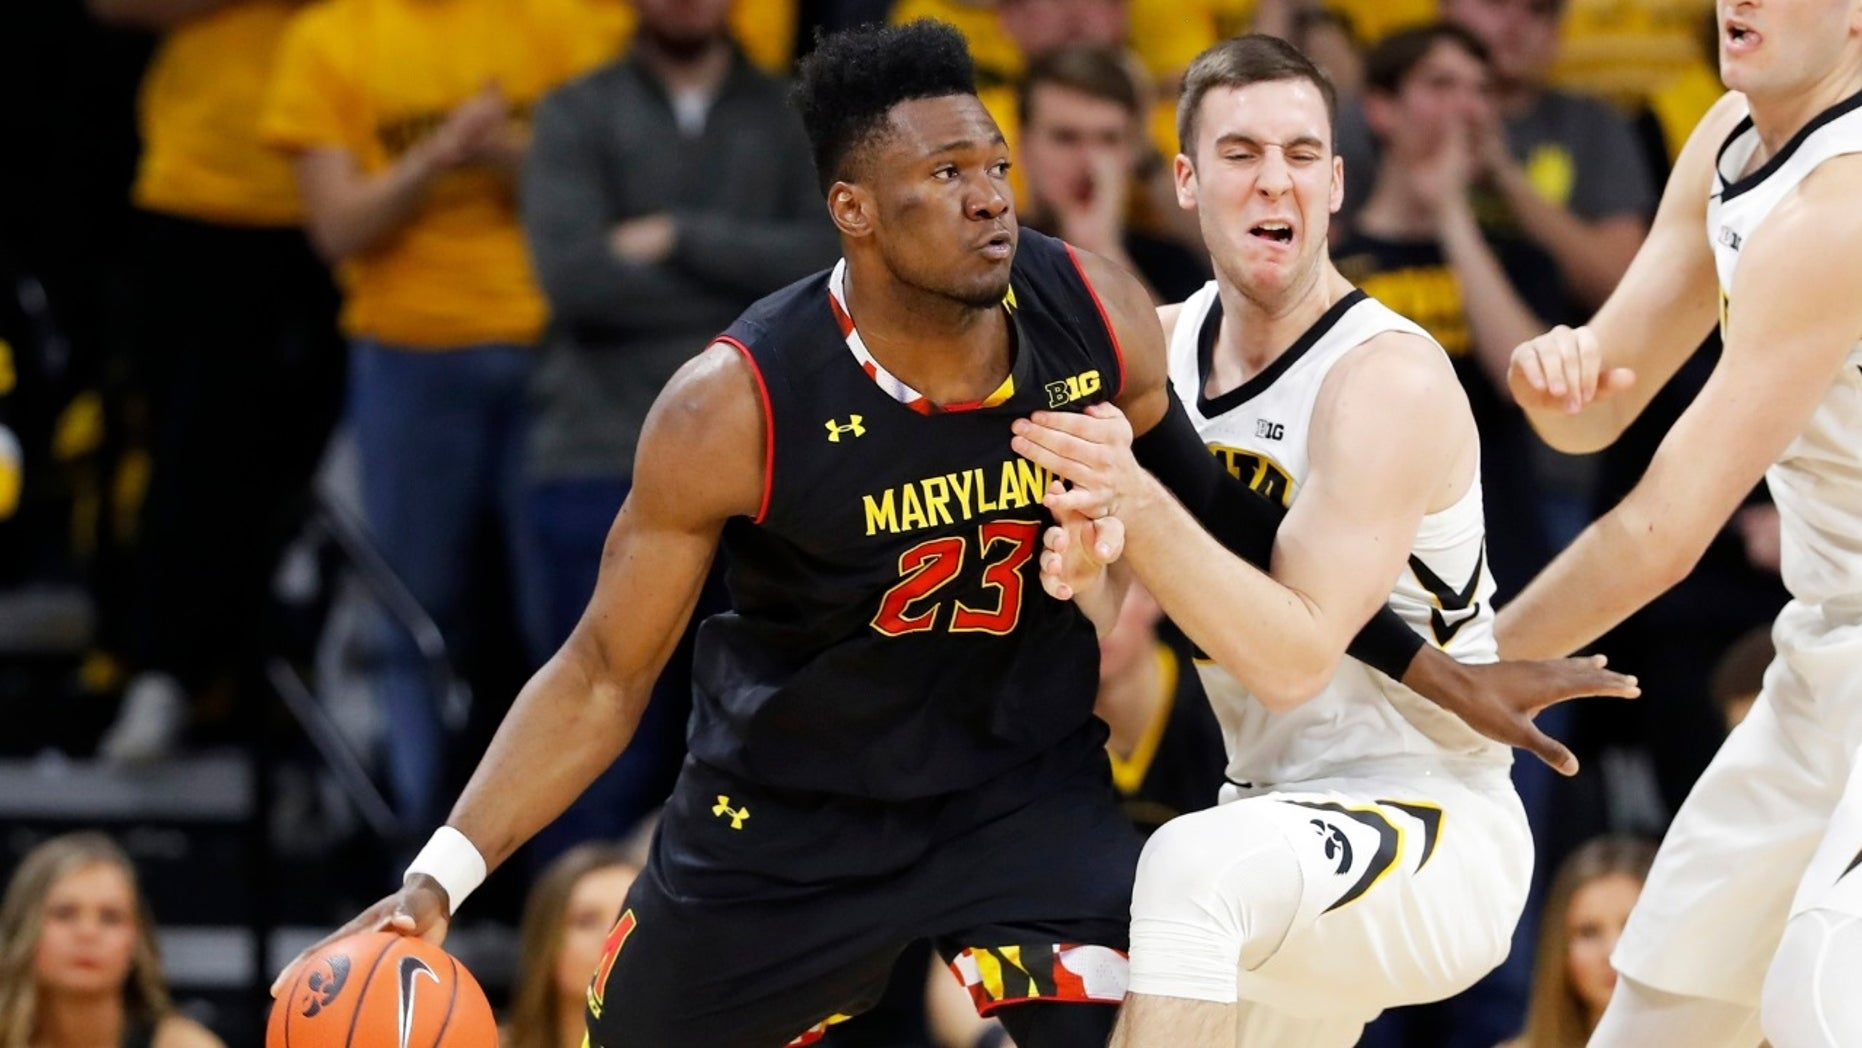 Maryland forward Bruno Fernando (23) drives past Iowa guard Connor McCaffery during the second half of an NCAA college basketball game Tuesday, Feb. 19, 2019, in Iowa City, Iowa.